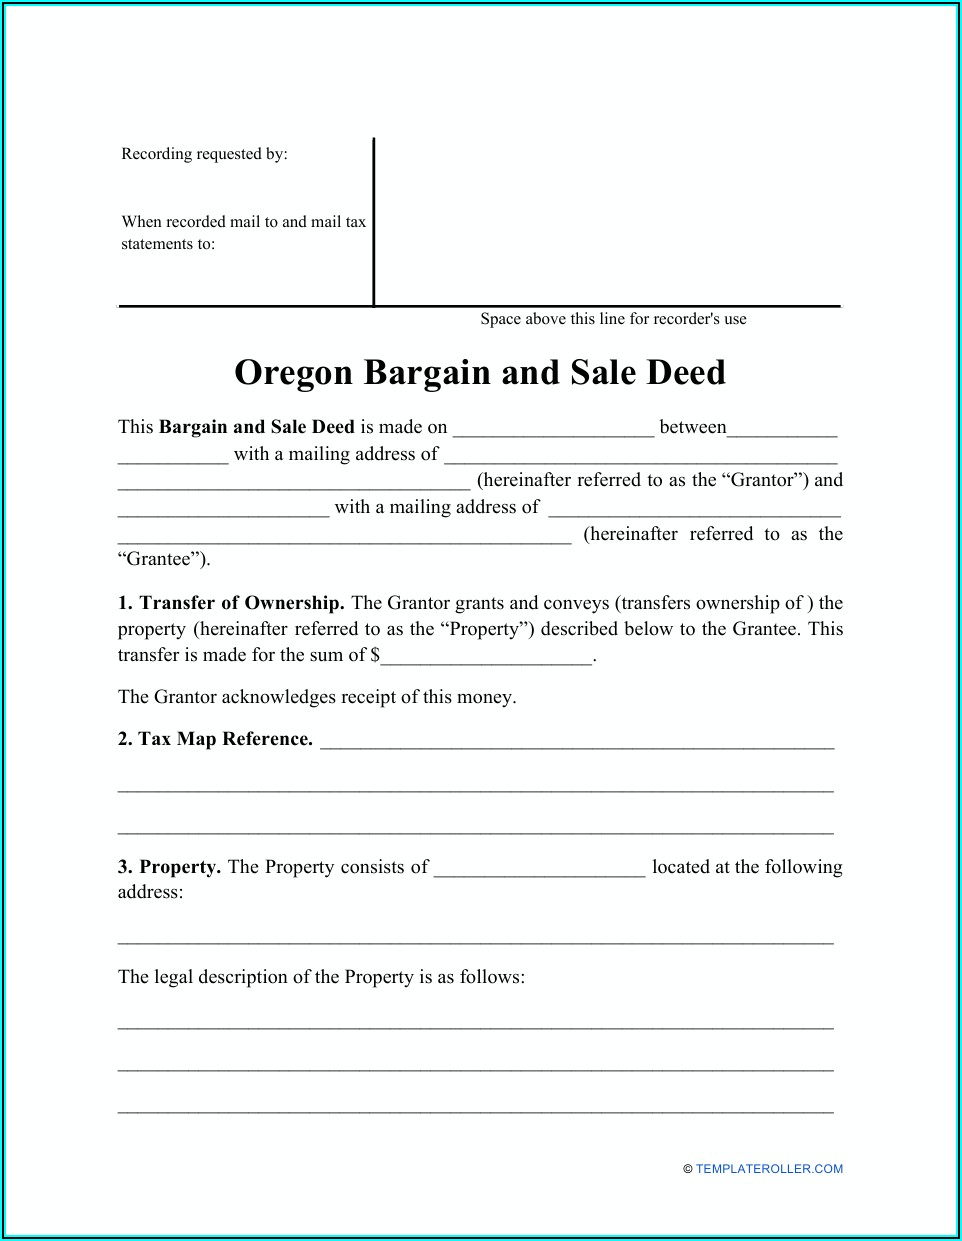 Bargain And Sale Deed Form Oregon